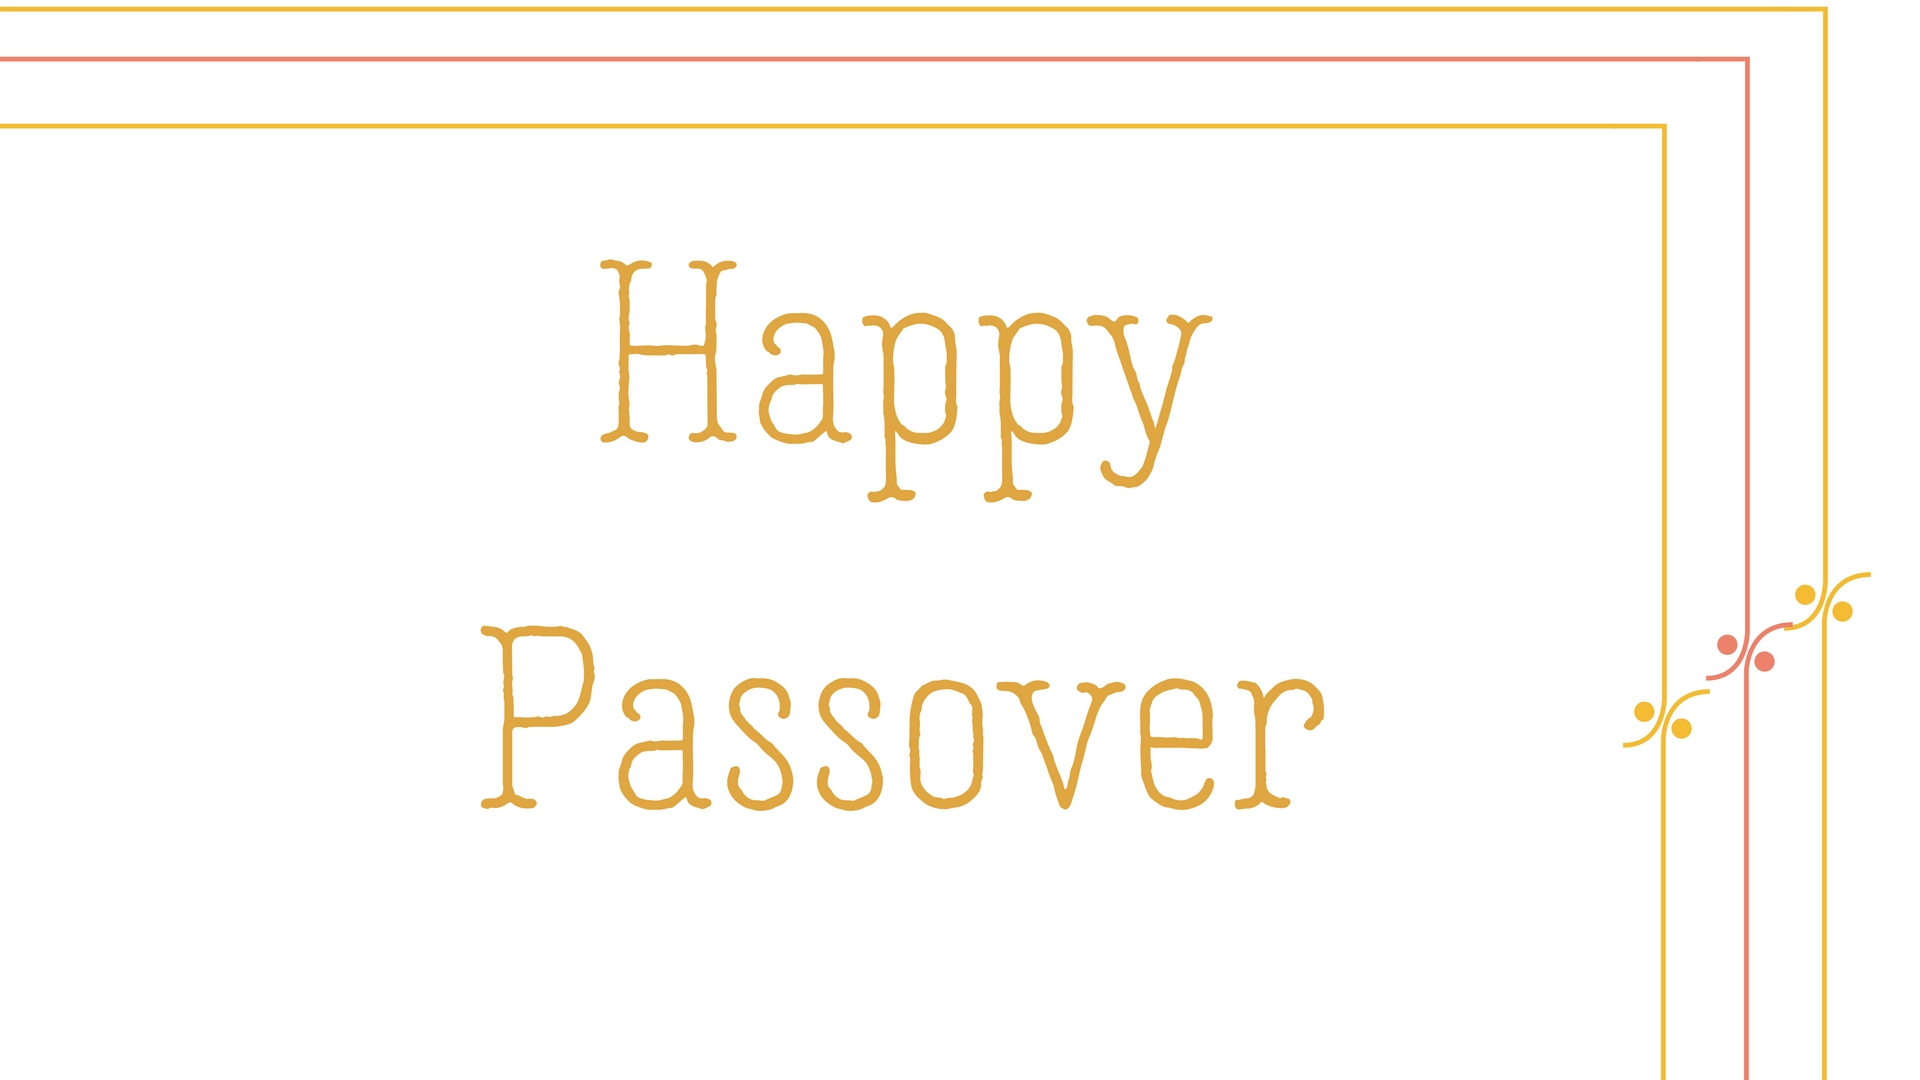 Happy Passover Rectangle Frame Greeting Card Postcard 18